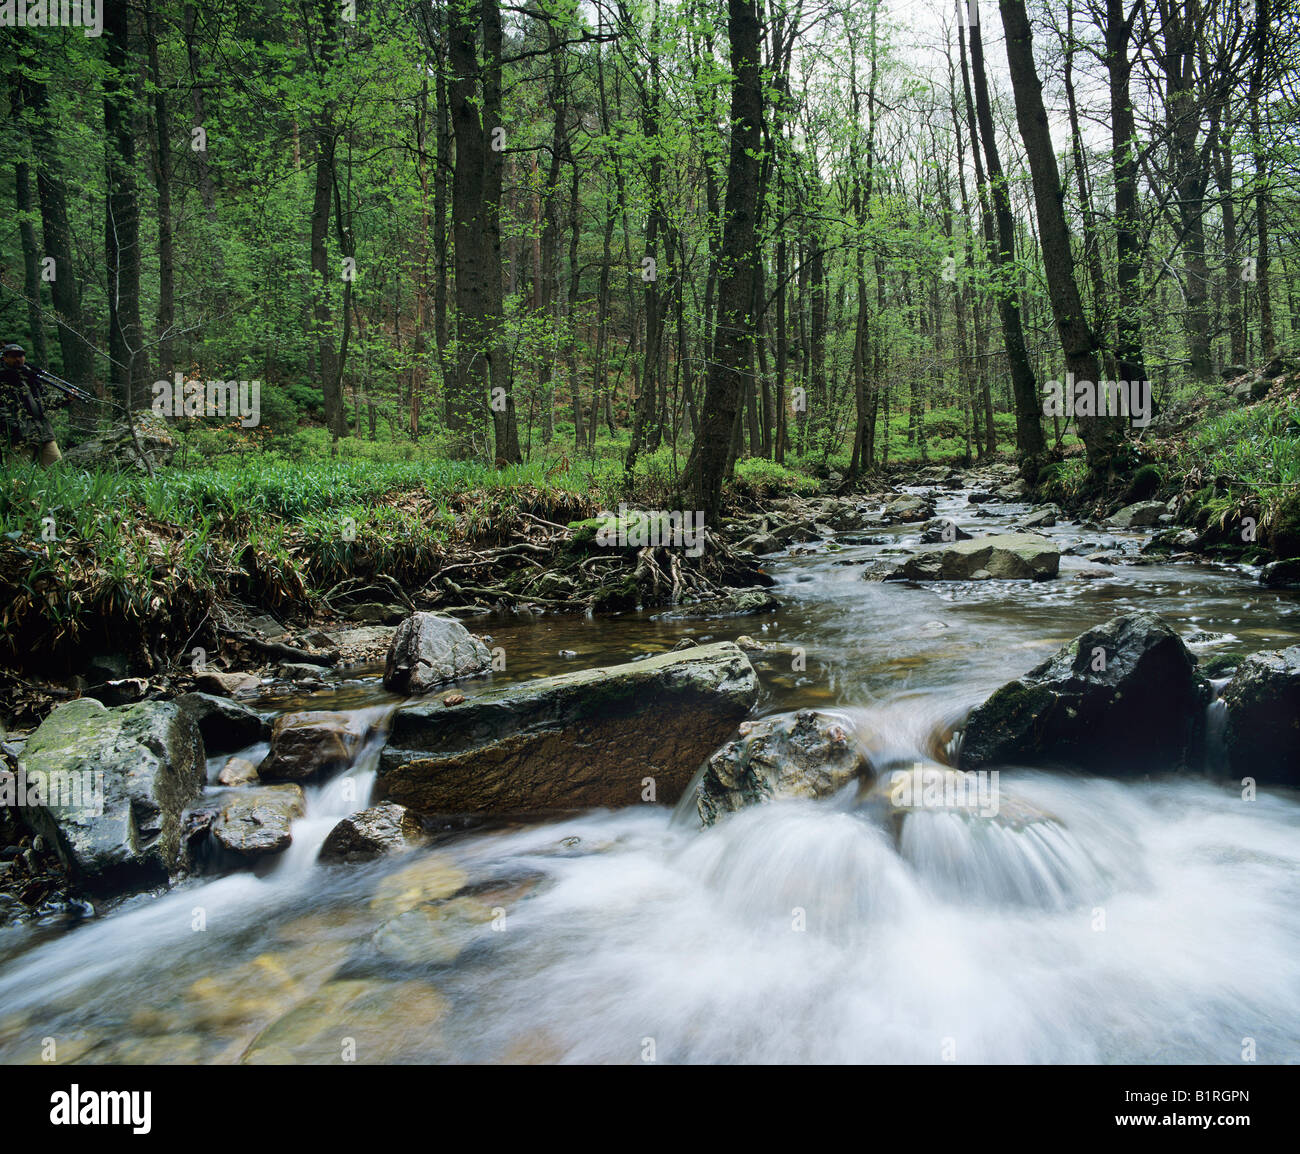 Natural forest stream in spring, High Fens, Eifel, Germany, Europe - Stock Image